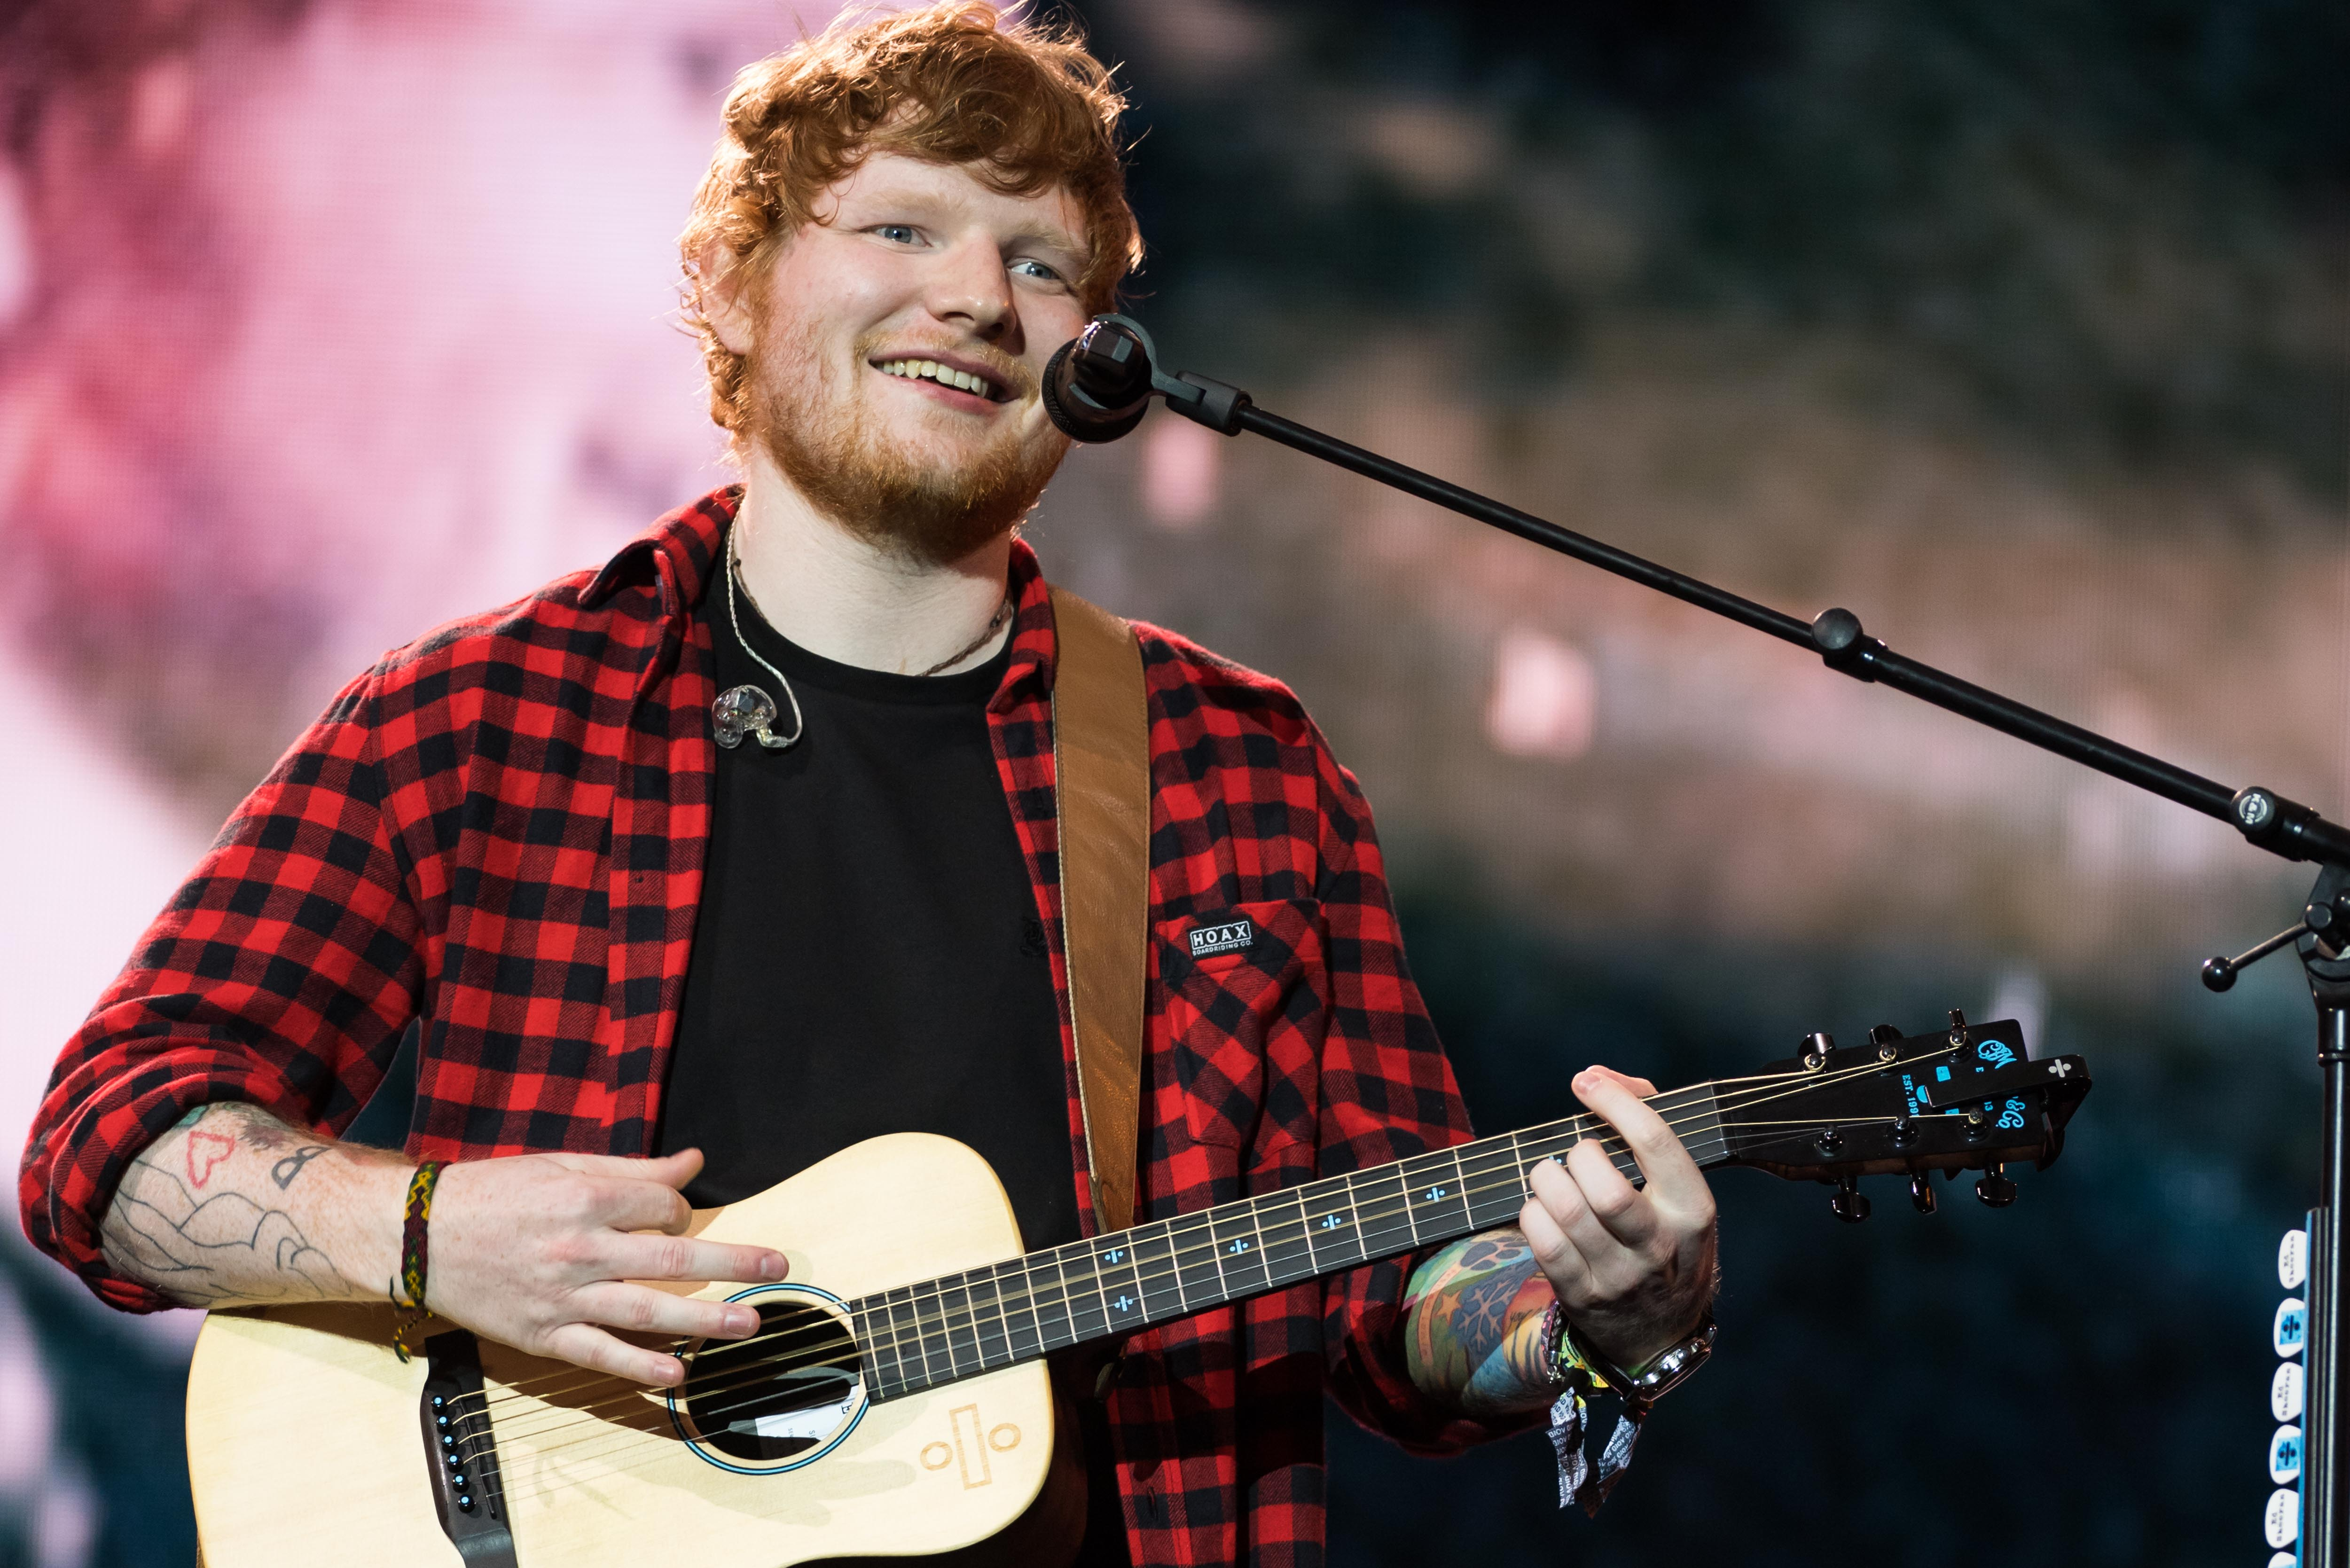 PILTON, ENGLAND - JUNE 25: Ed Sheeran headlines on the Pyramid Stage during day 4 of the Glastonbury Festival 2017 at Worthy Farm, Pilton on June 25, 2017 in Glastonbury, England. (Photo by Ian Gavan/Getty Images)